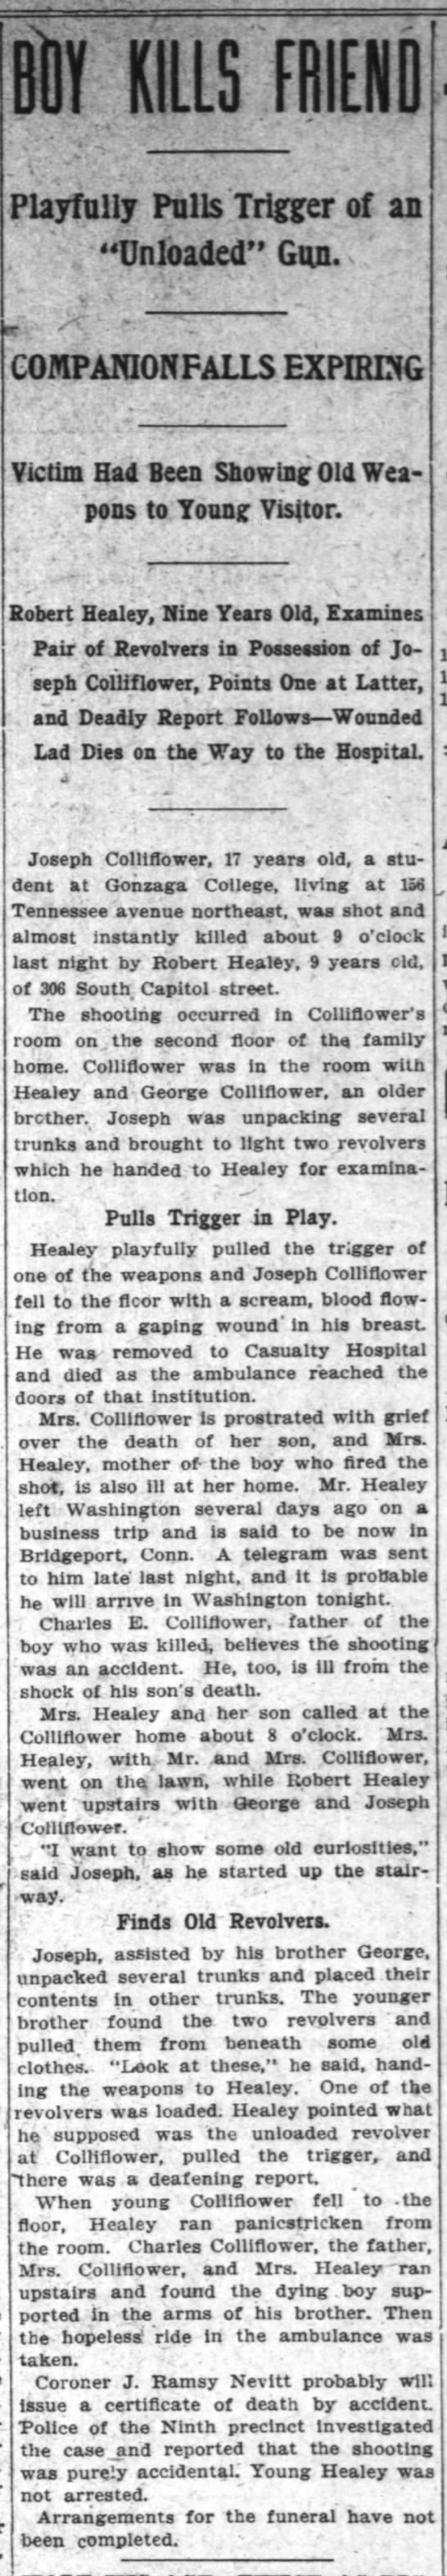 Boy Kills Friend [Death of Joseph Colliflower] -